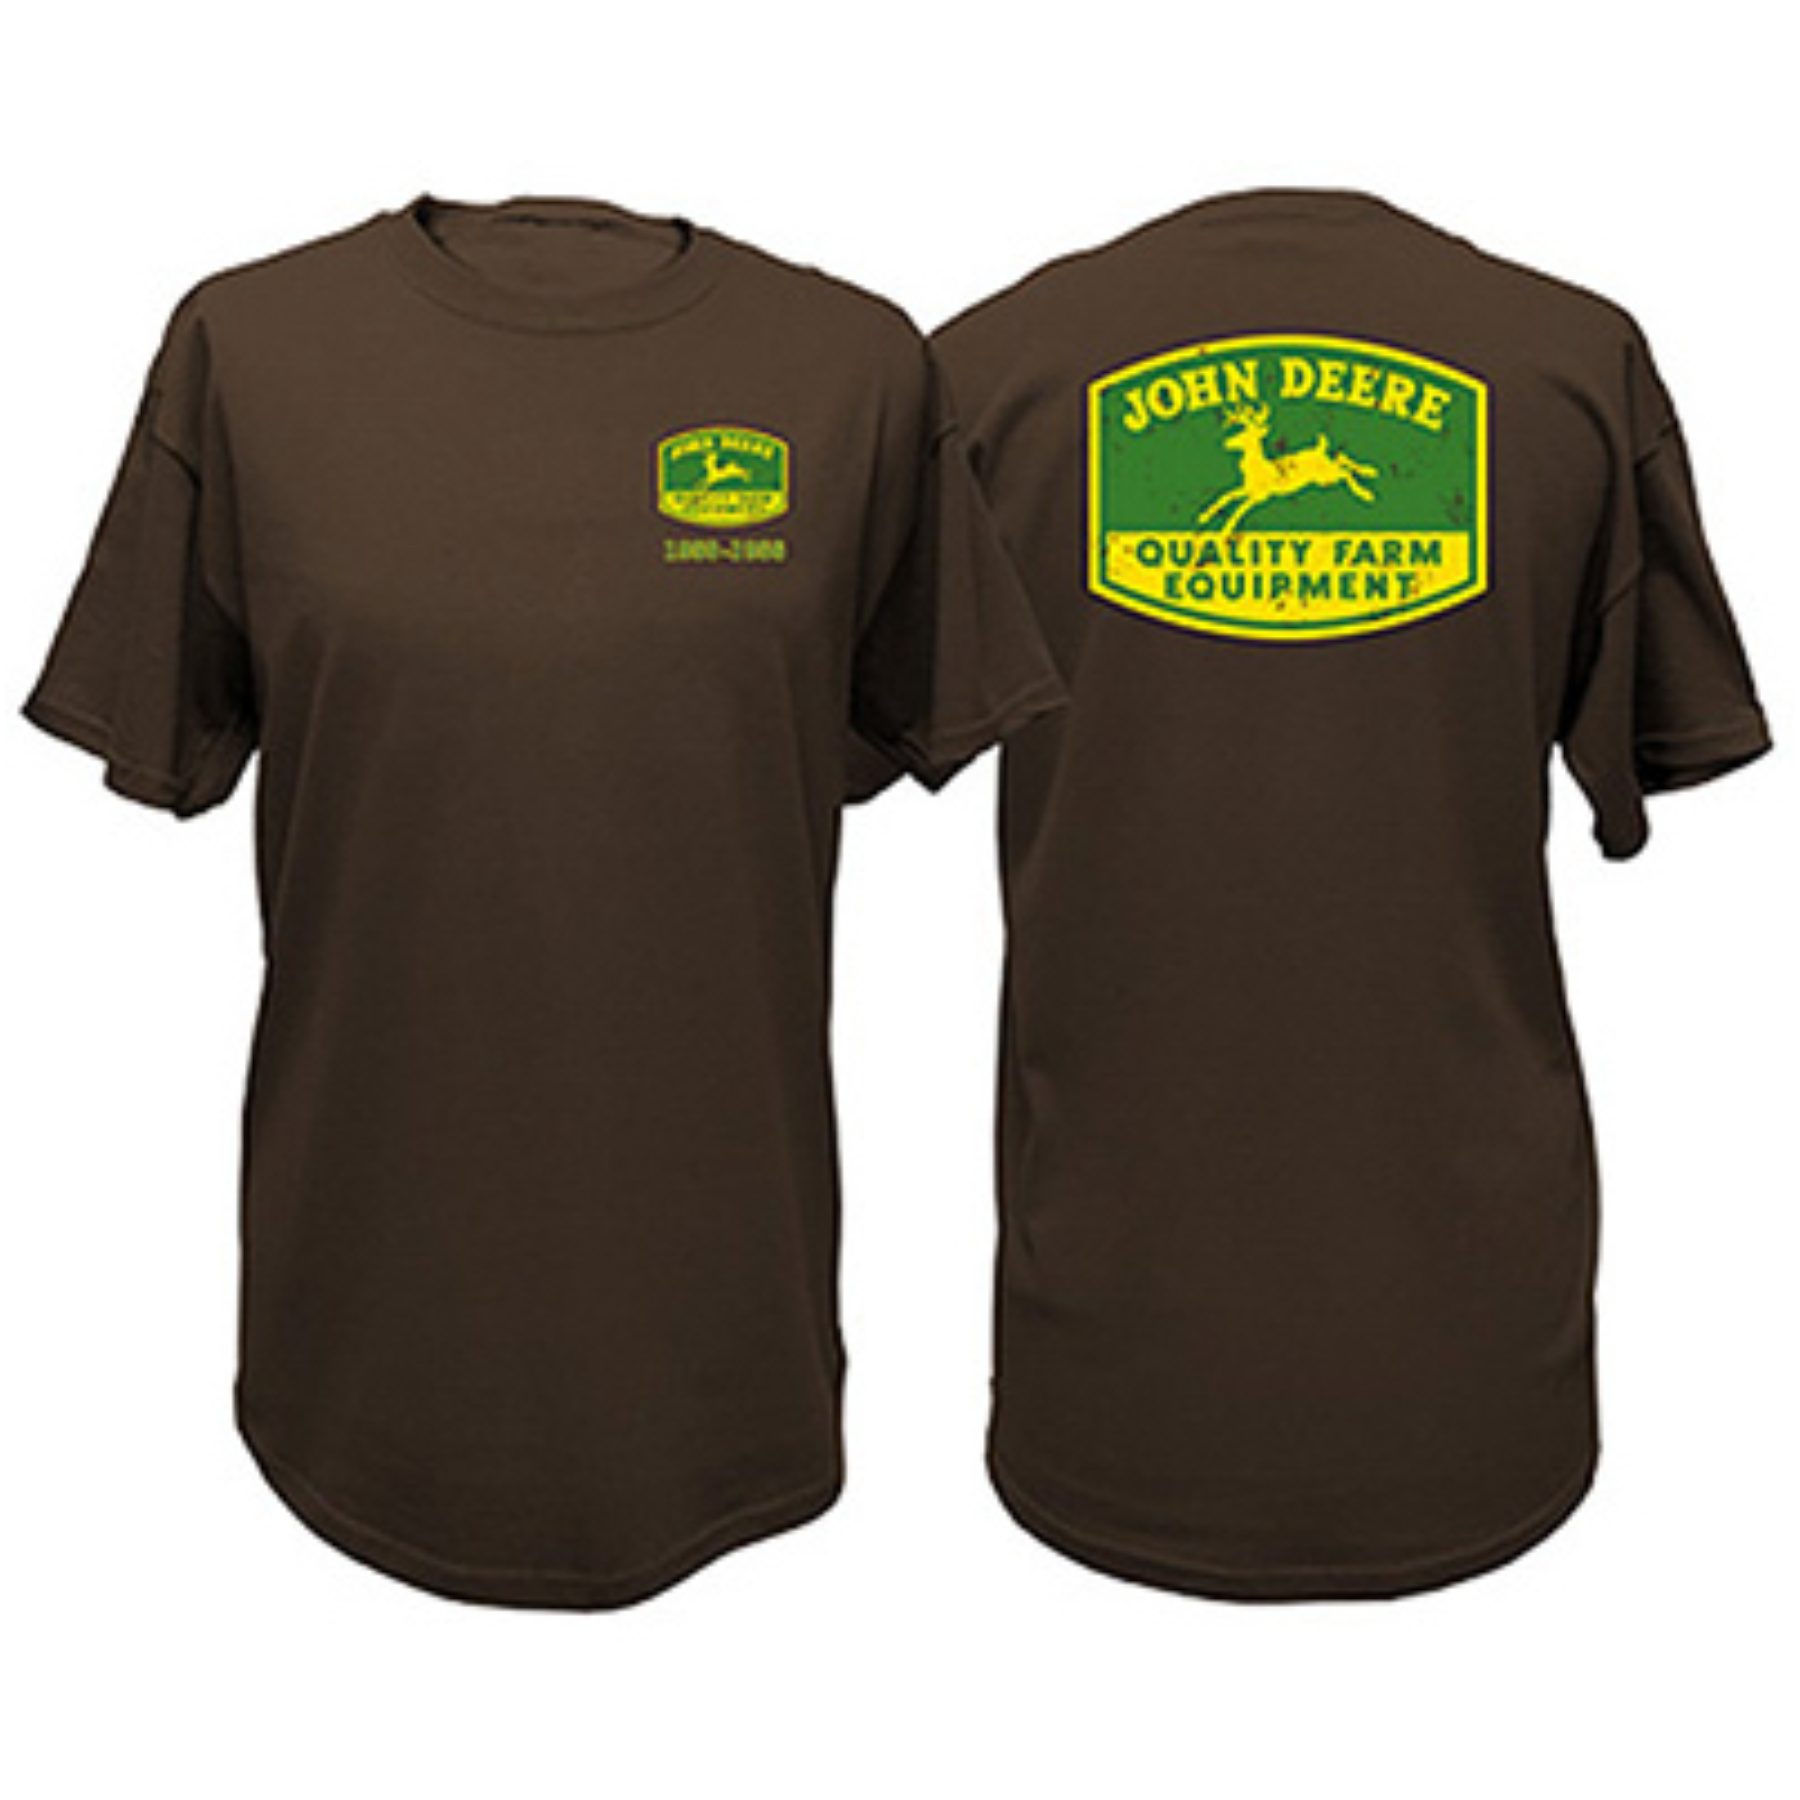 john deere mens clothes & accessories